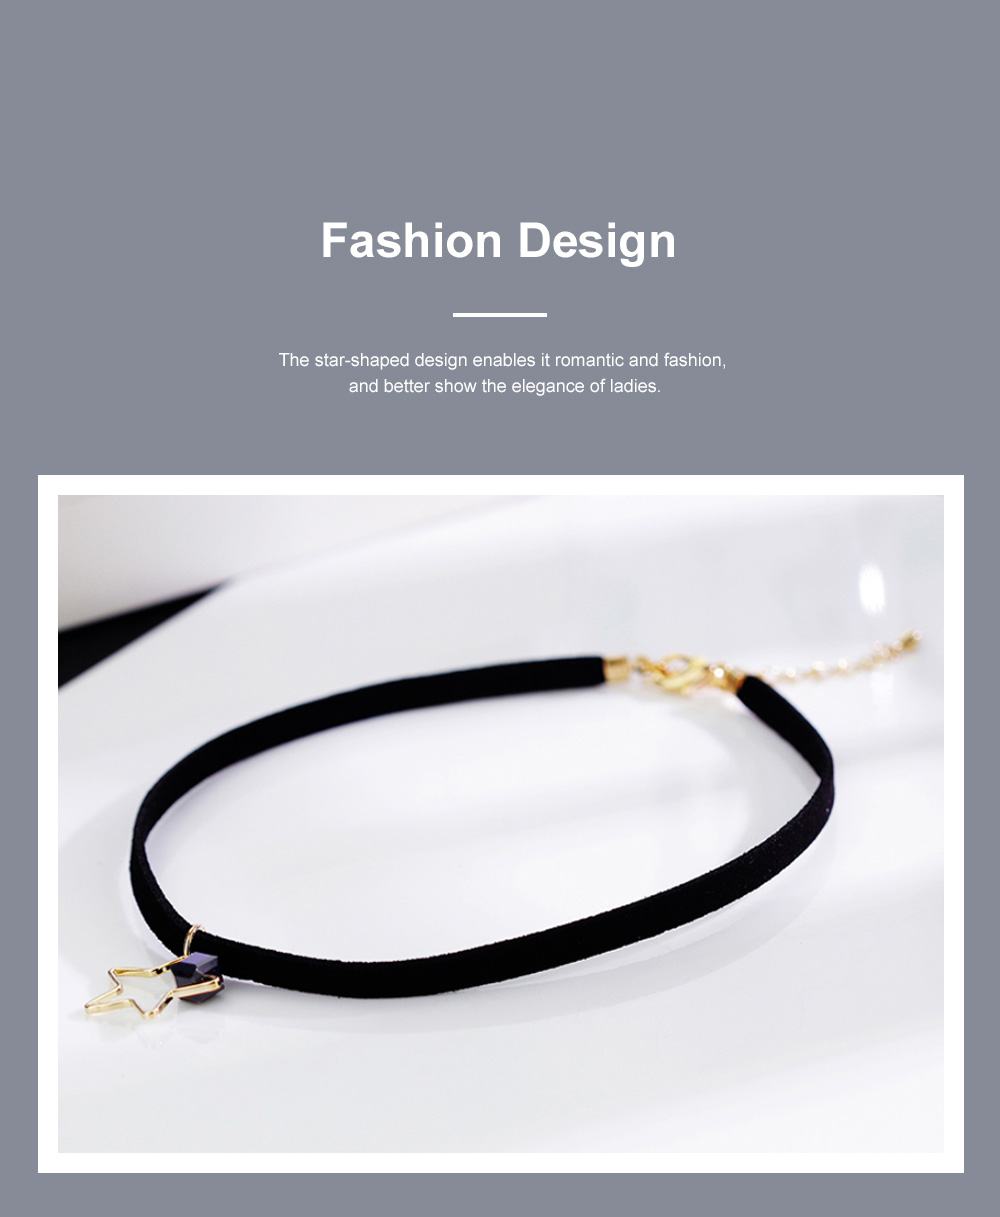 Fashion Star Choker Necklace Short Necklaces Bracelet Plated Rose Gold Neck Jewelry for Women Girls 4